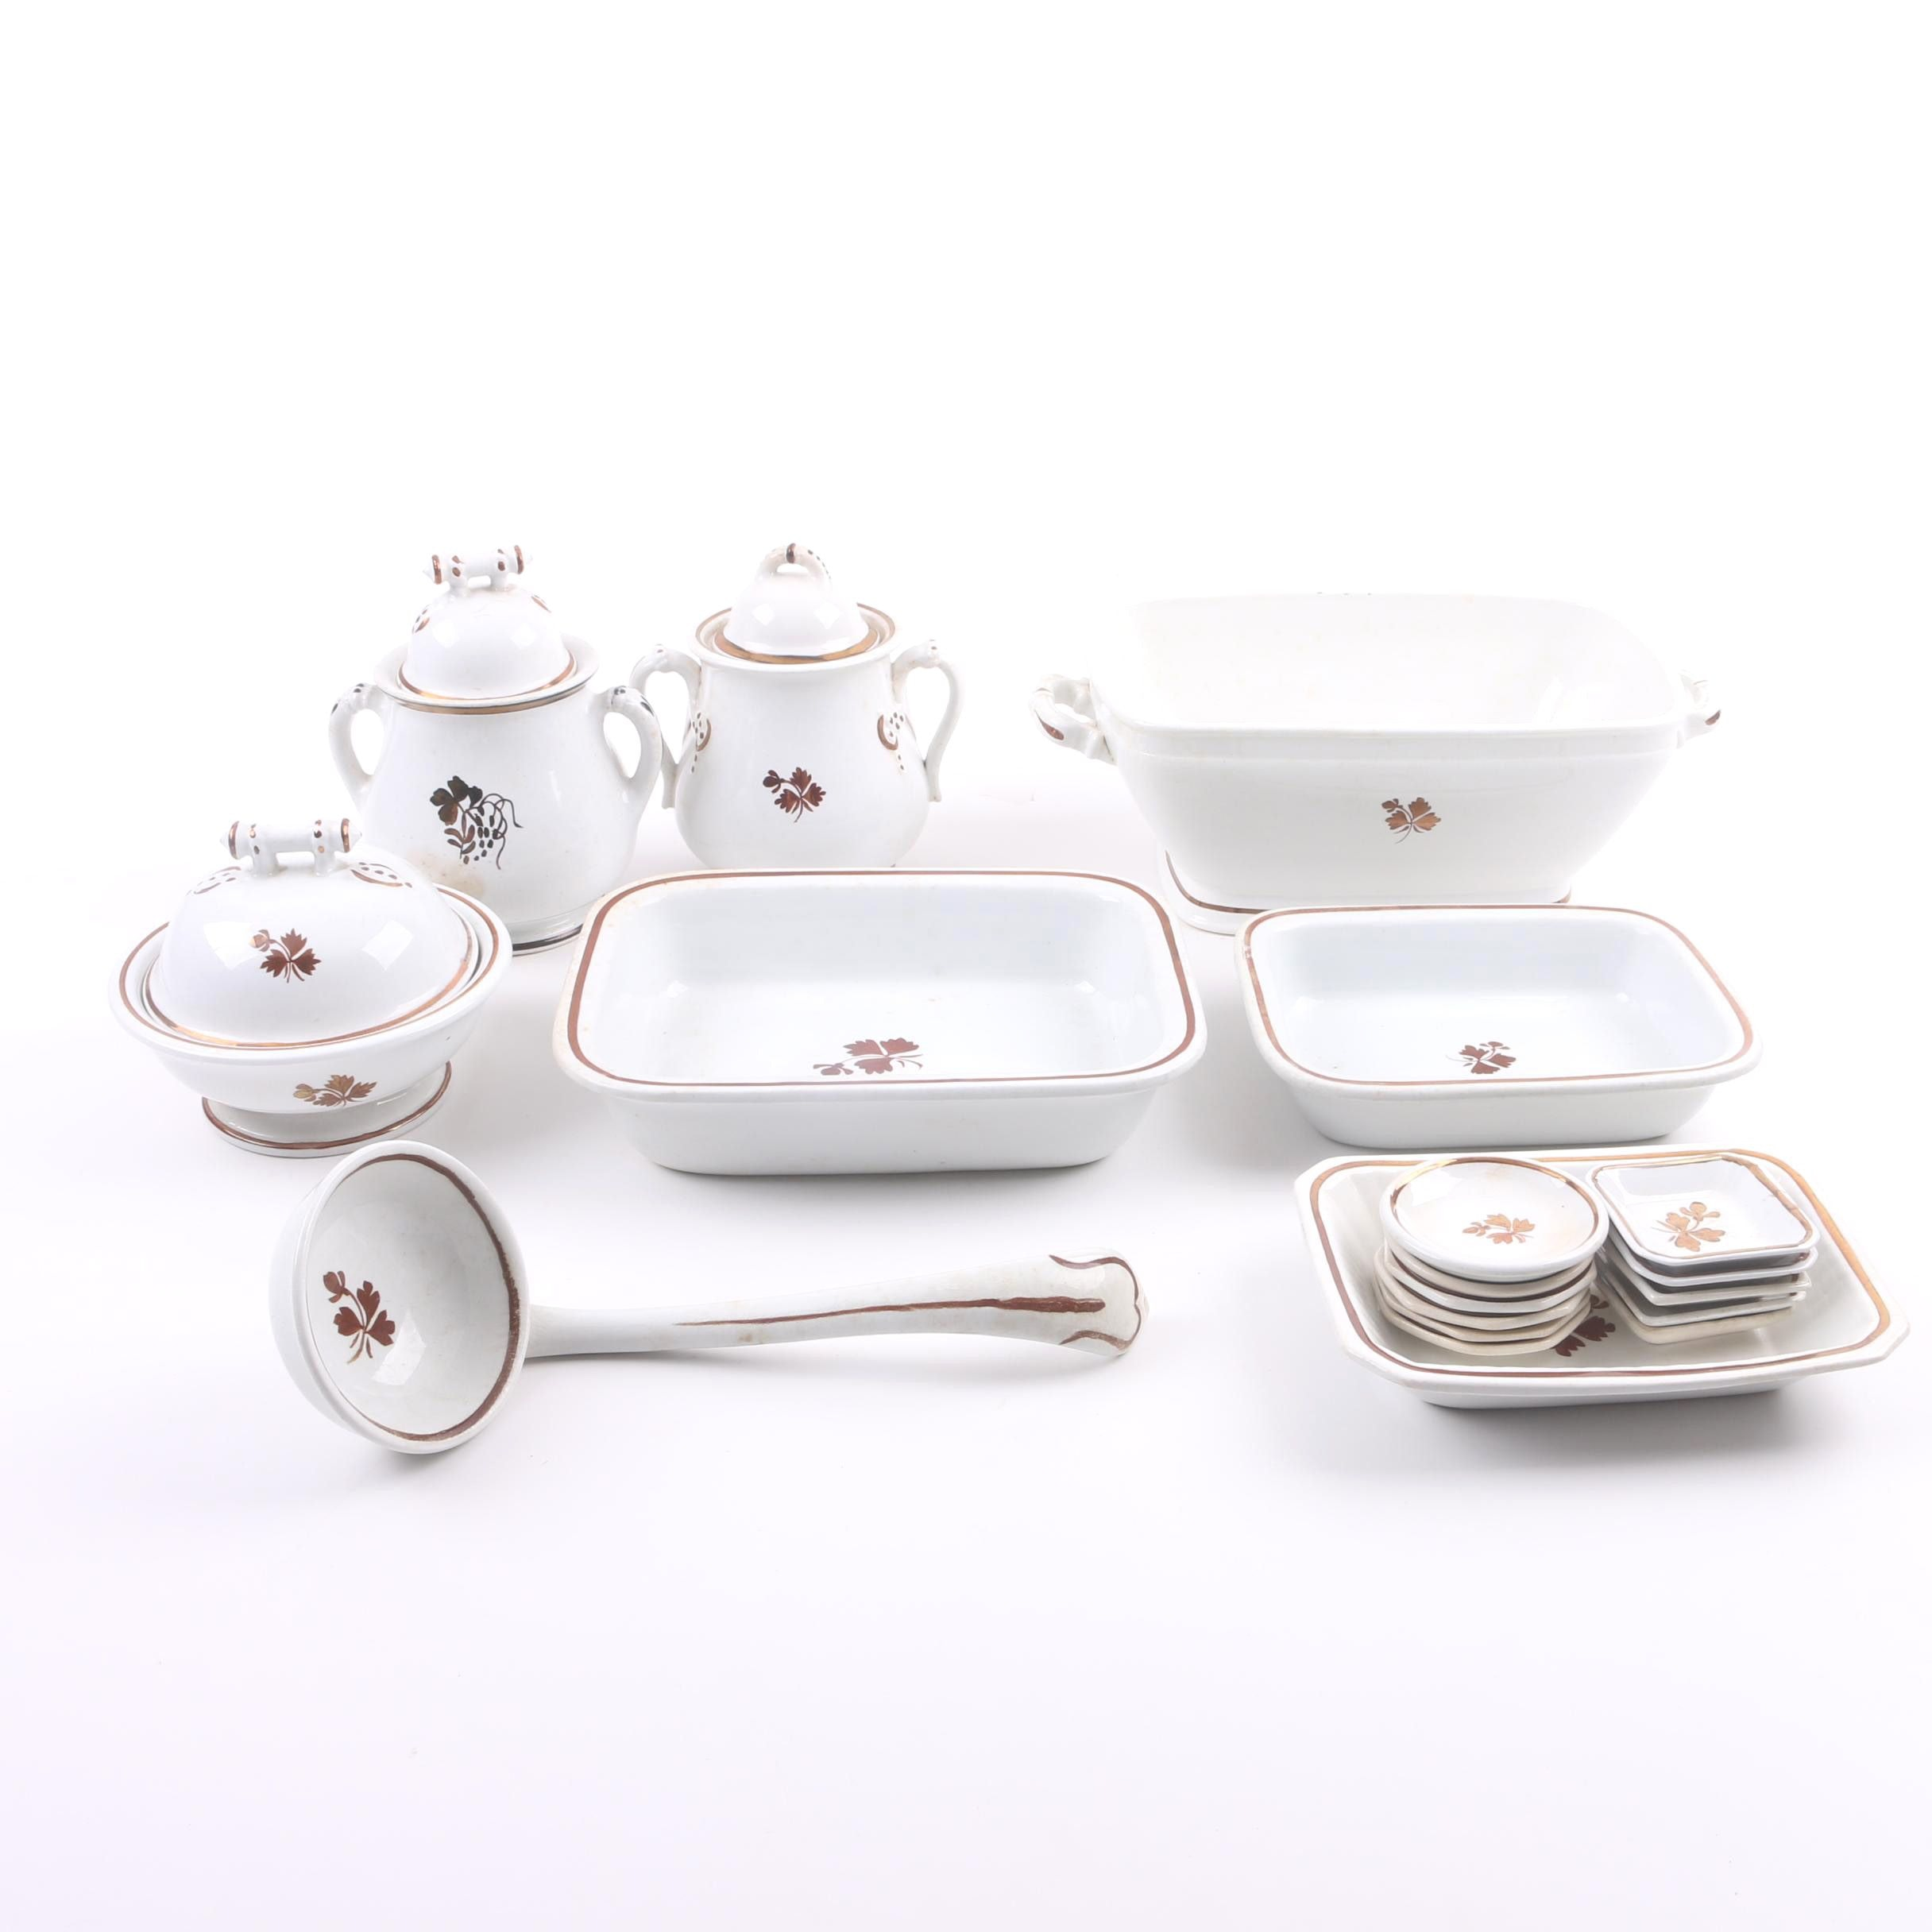 "Antique ""Tea Leaf"" Ironstone Serveware Featuring Mellor, Taylor & Co."